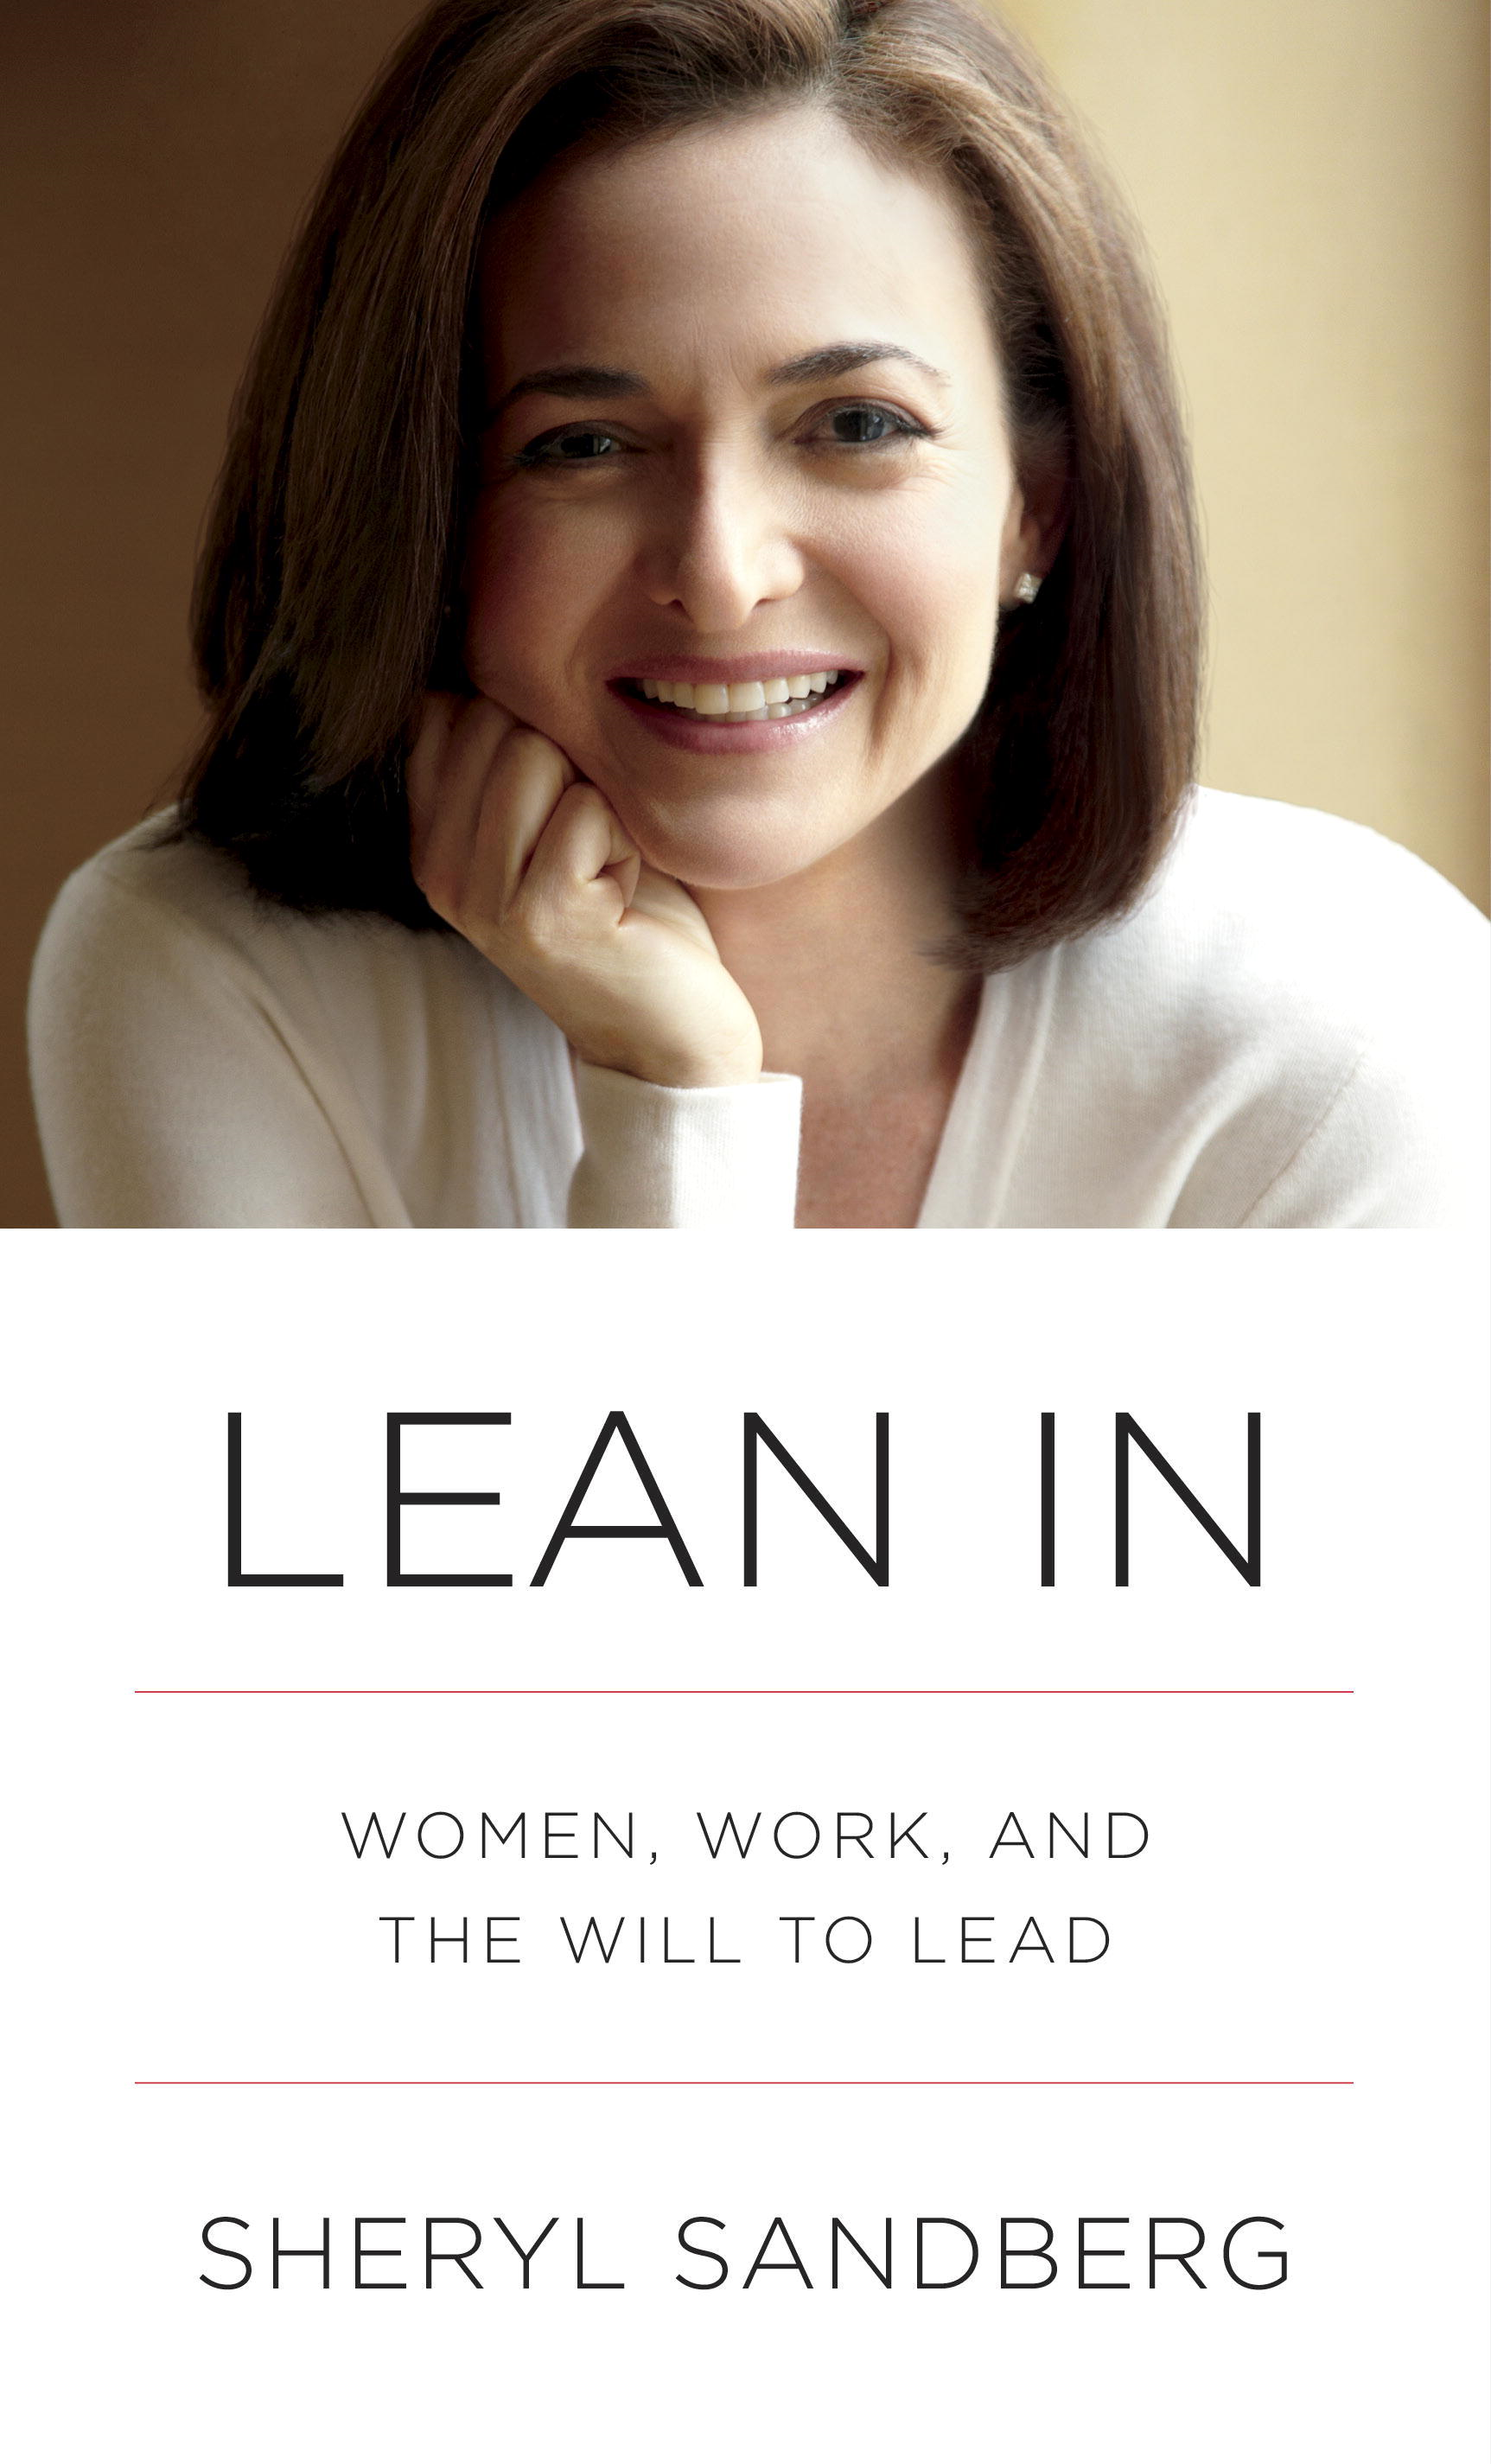 lean in by sheryl sandberg available on amazon, kindle, kobo